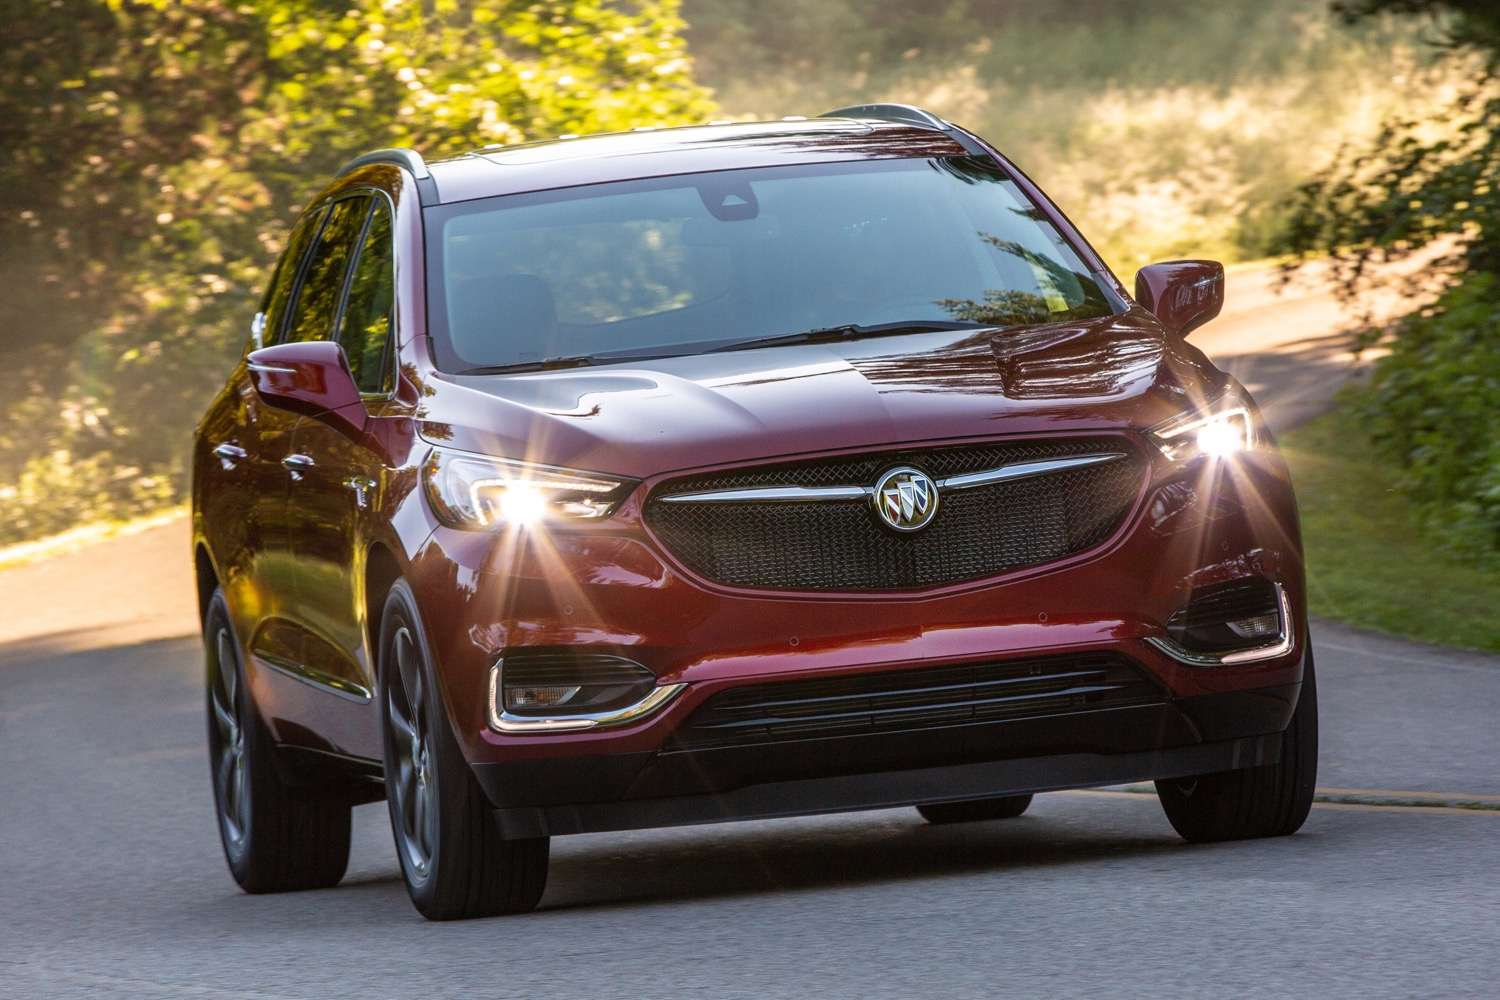 2020 Buick Enclave Info, Specs, Wiki | Gm Authority New 2022 Buick Enclave Ground Clearance, Gas Type, Horsepower